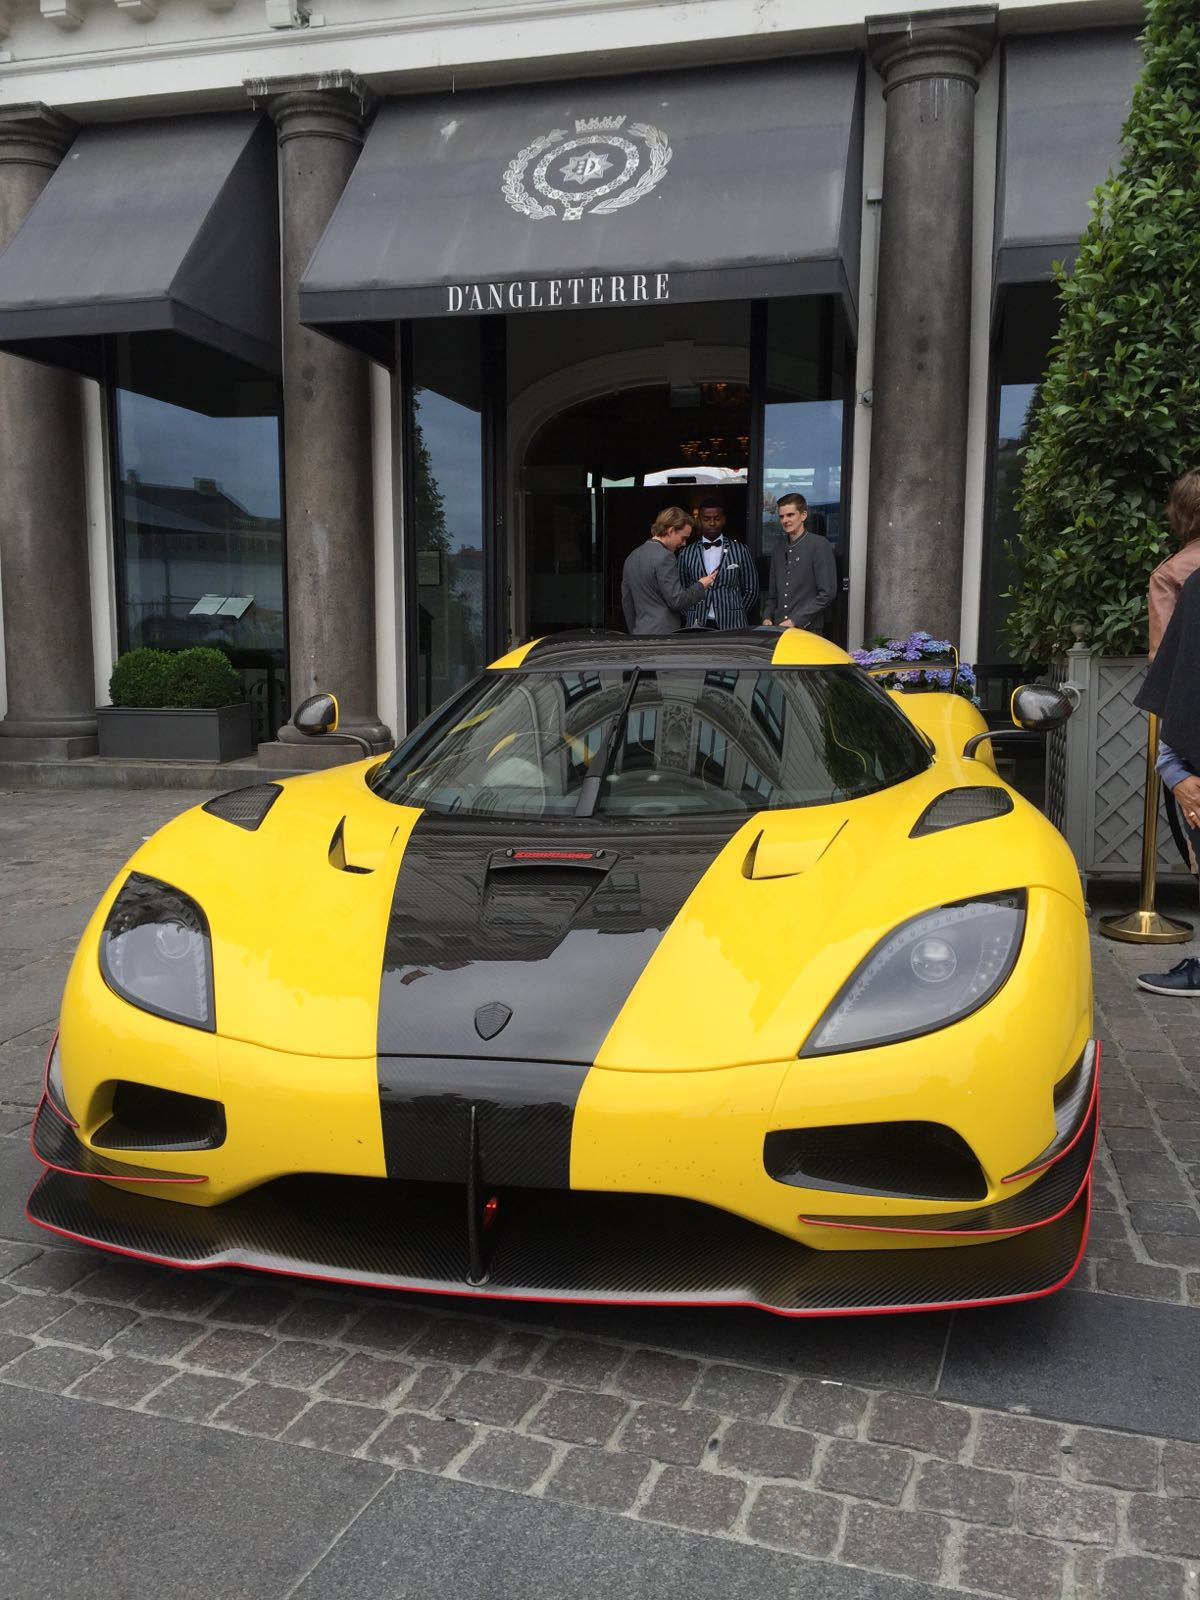 Fantastic car, Konigsegg Agera RS